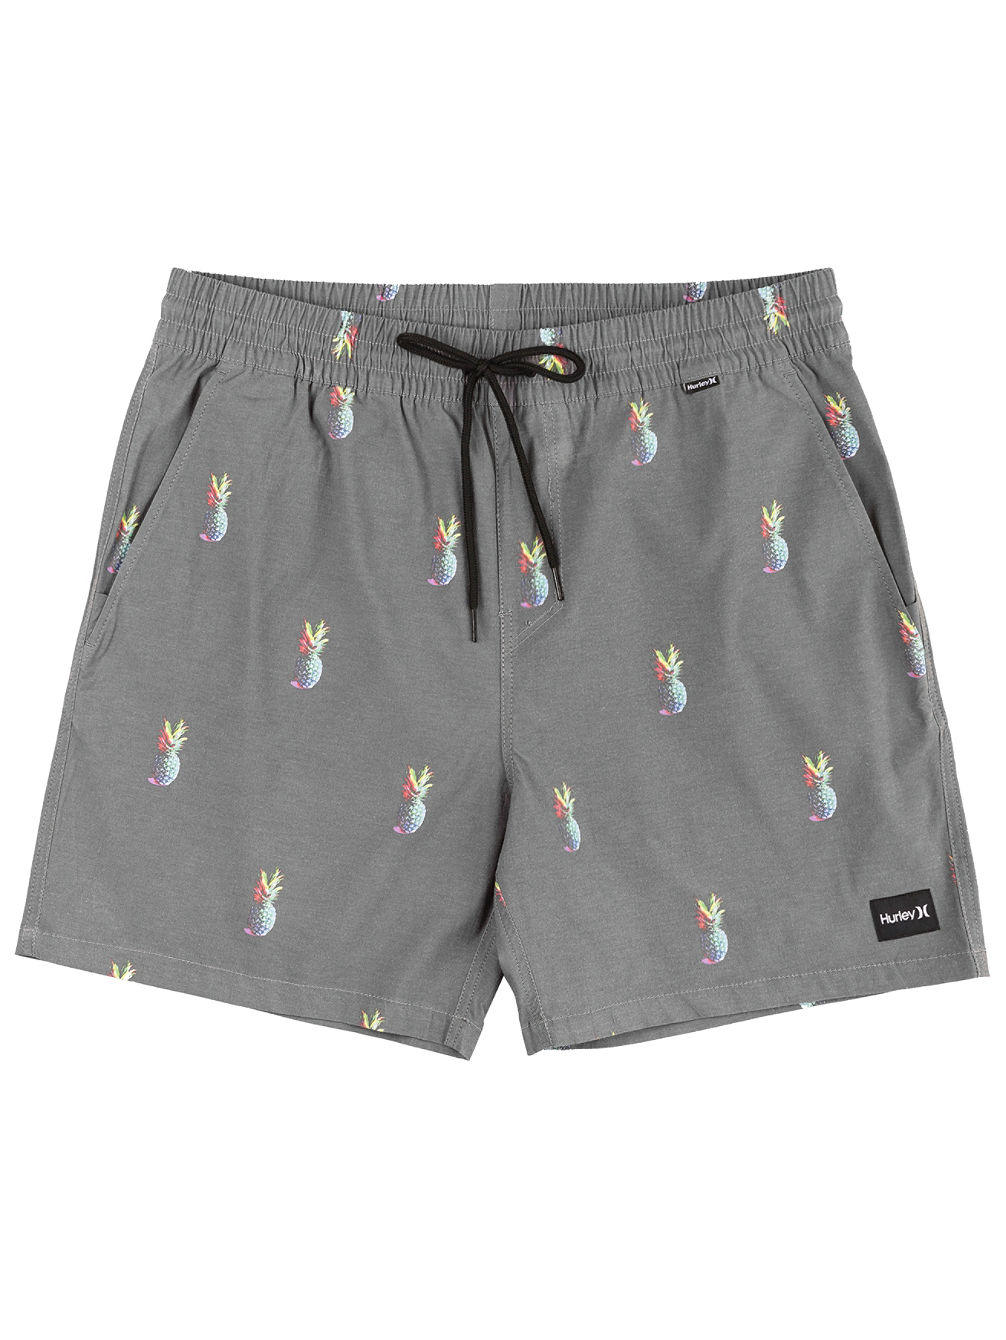 "Pineapple Volley 17"" Shorts"